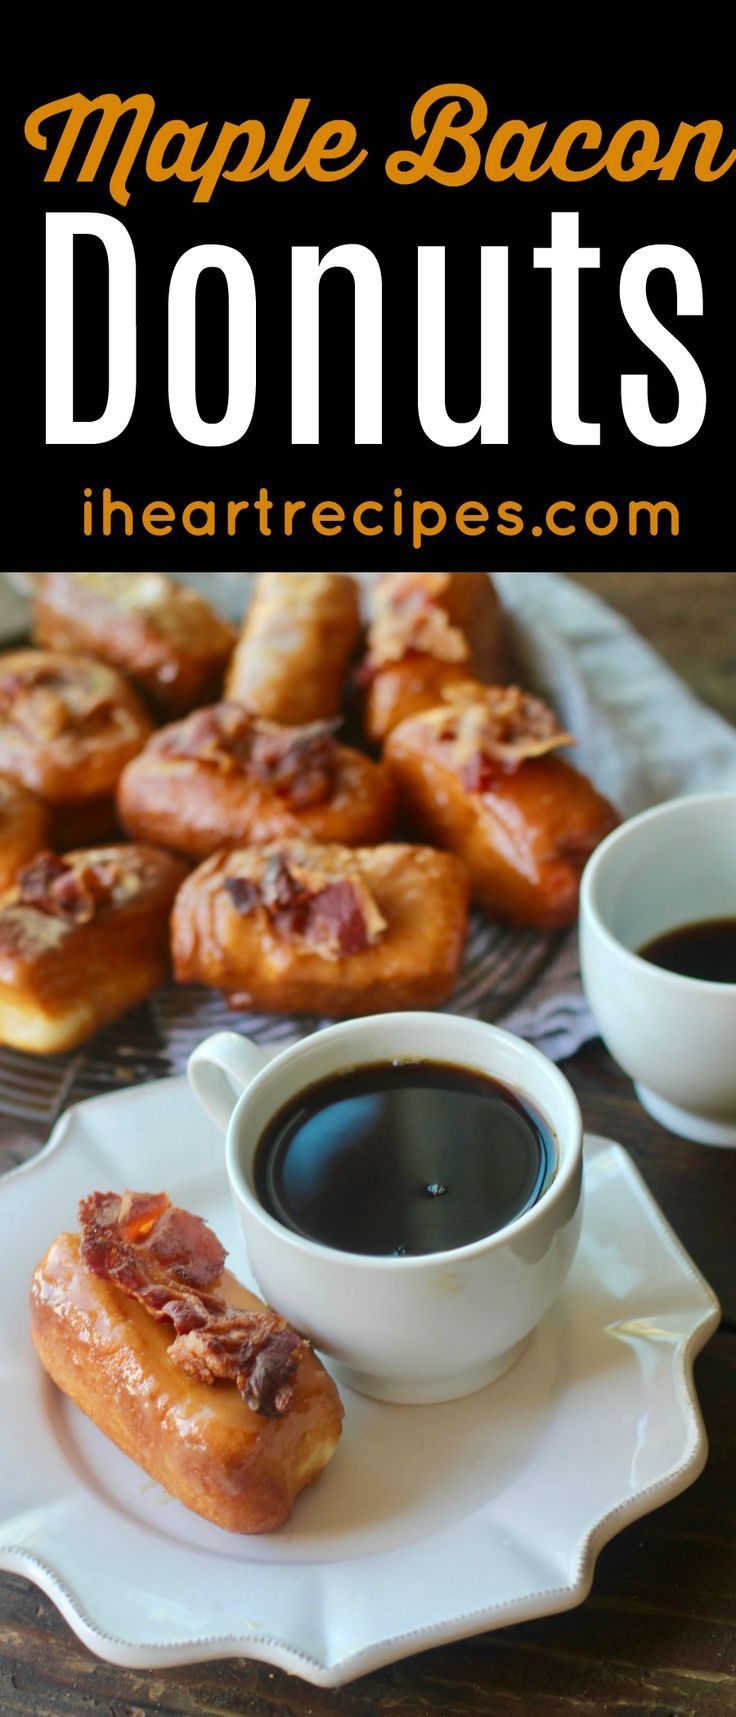 """""""Where can I buy a maple bacon donut?"""".. No need to search for that anymore, because I'm going to share this easy maple bacon donut recipe that anyone could make! Are you crazy about maple bacon donuts? I know I am! I remember when I had first heard of them I was online trying to find where I could find a maple bacon donut near me. Seriously, I didn't care about the calories ( warning, if you want to enjoy this treat - don't search for """" maple bacon donut calories&q..."""